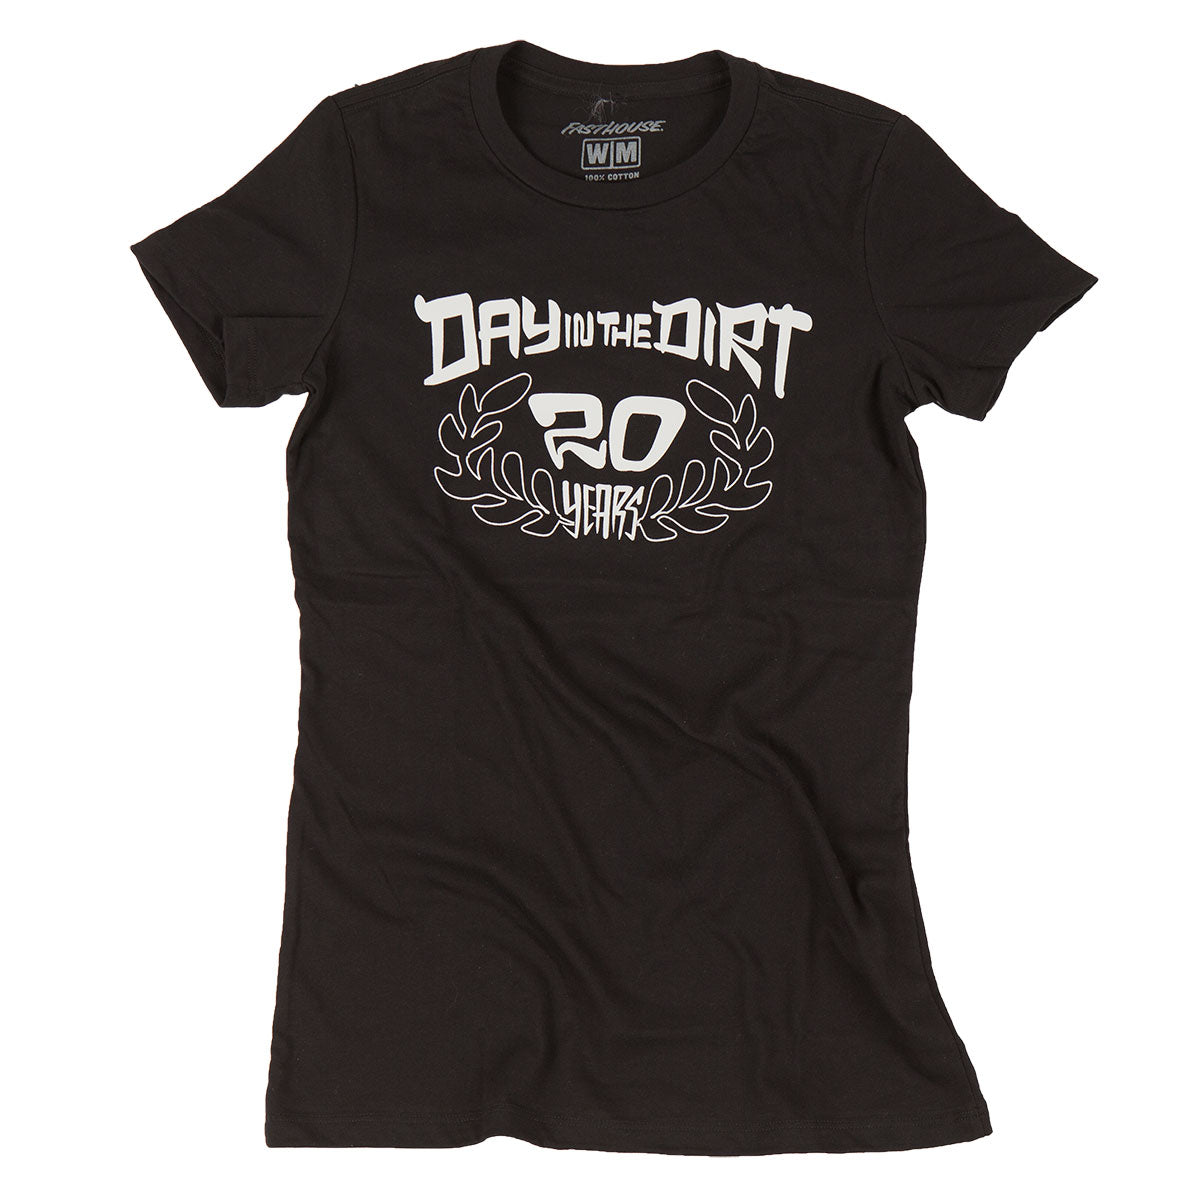 Fasthouse - Day in the Dirt 20th Wreath Womens Tee - Black